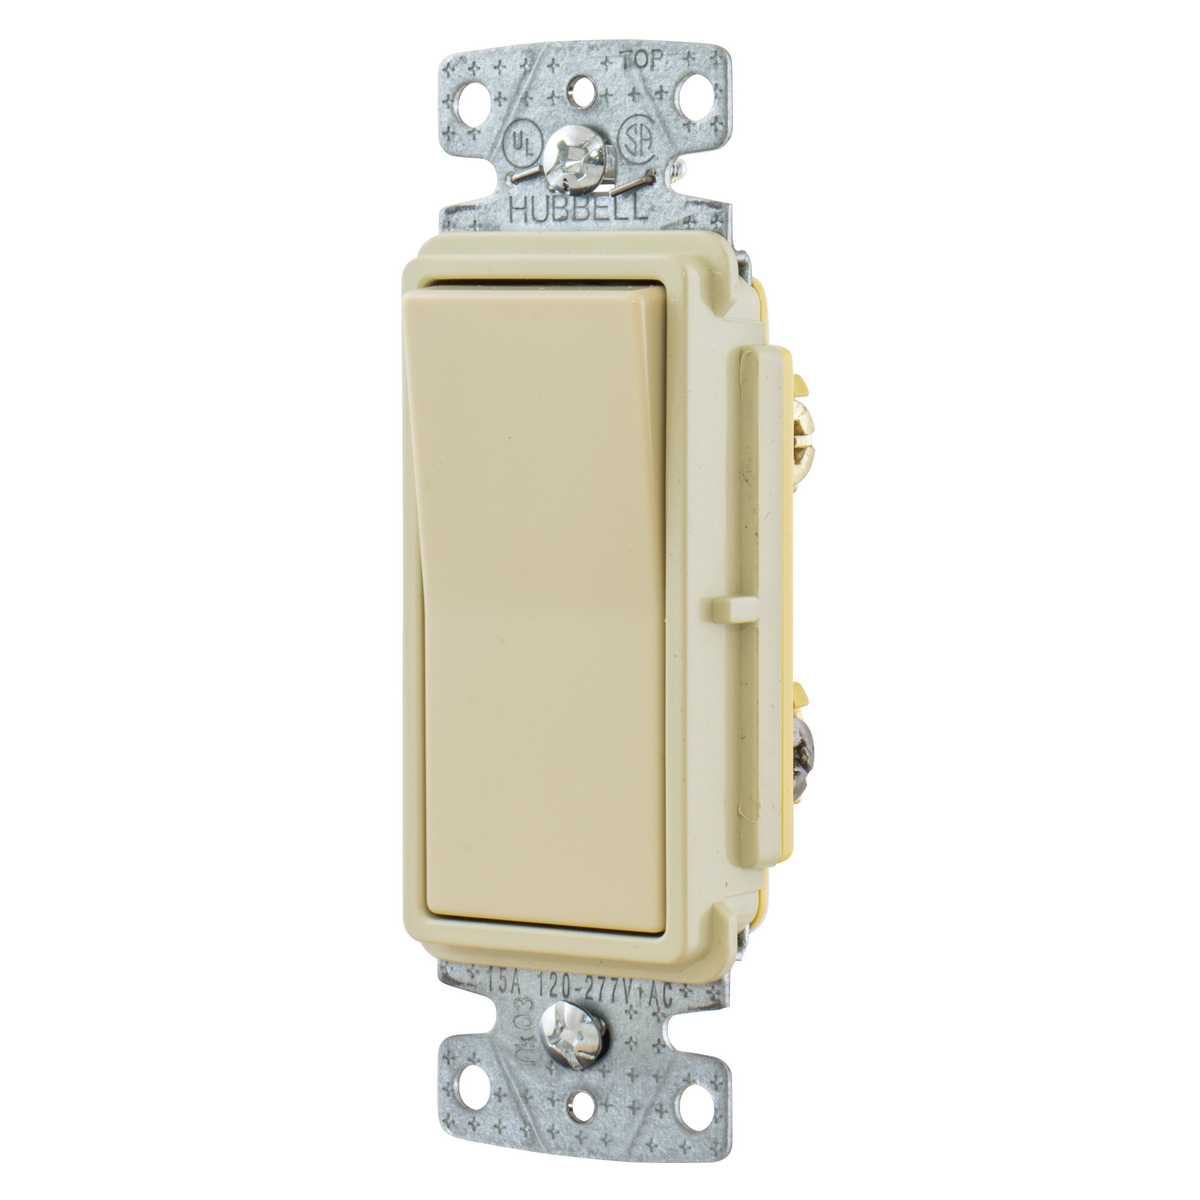 hubbell wiring toggle switch 3 way illuminated 15a ivory per 6 each  switches united electric hubbell wiring toggle switch 3 way illuminated 15a ivory per 6 each